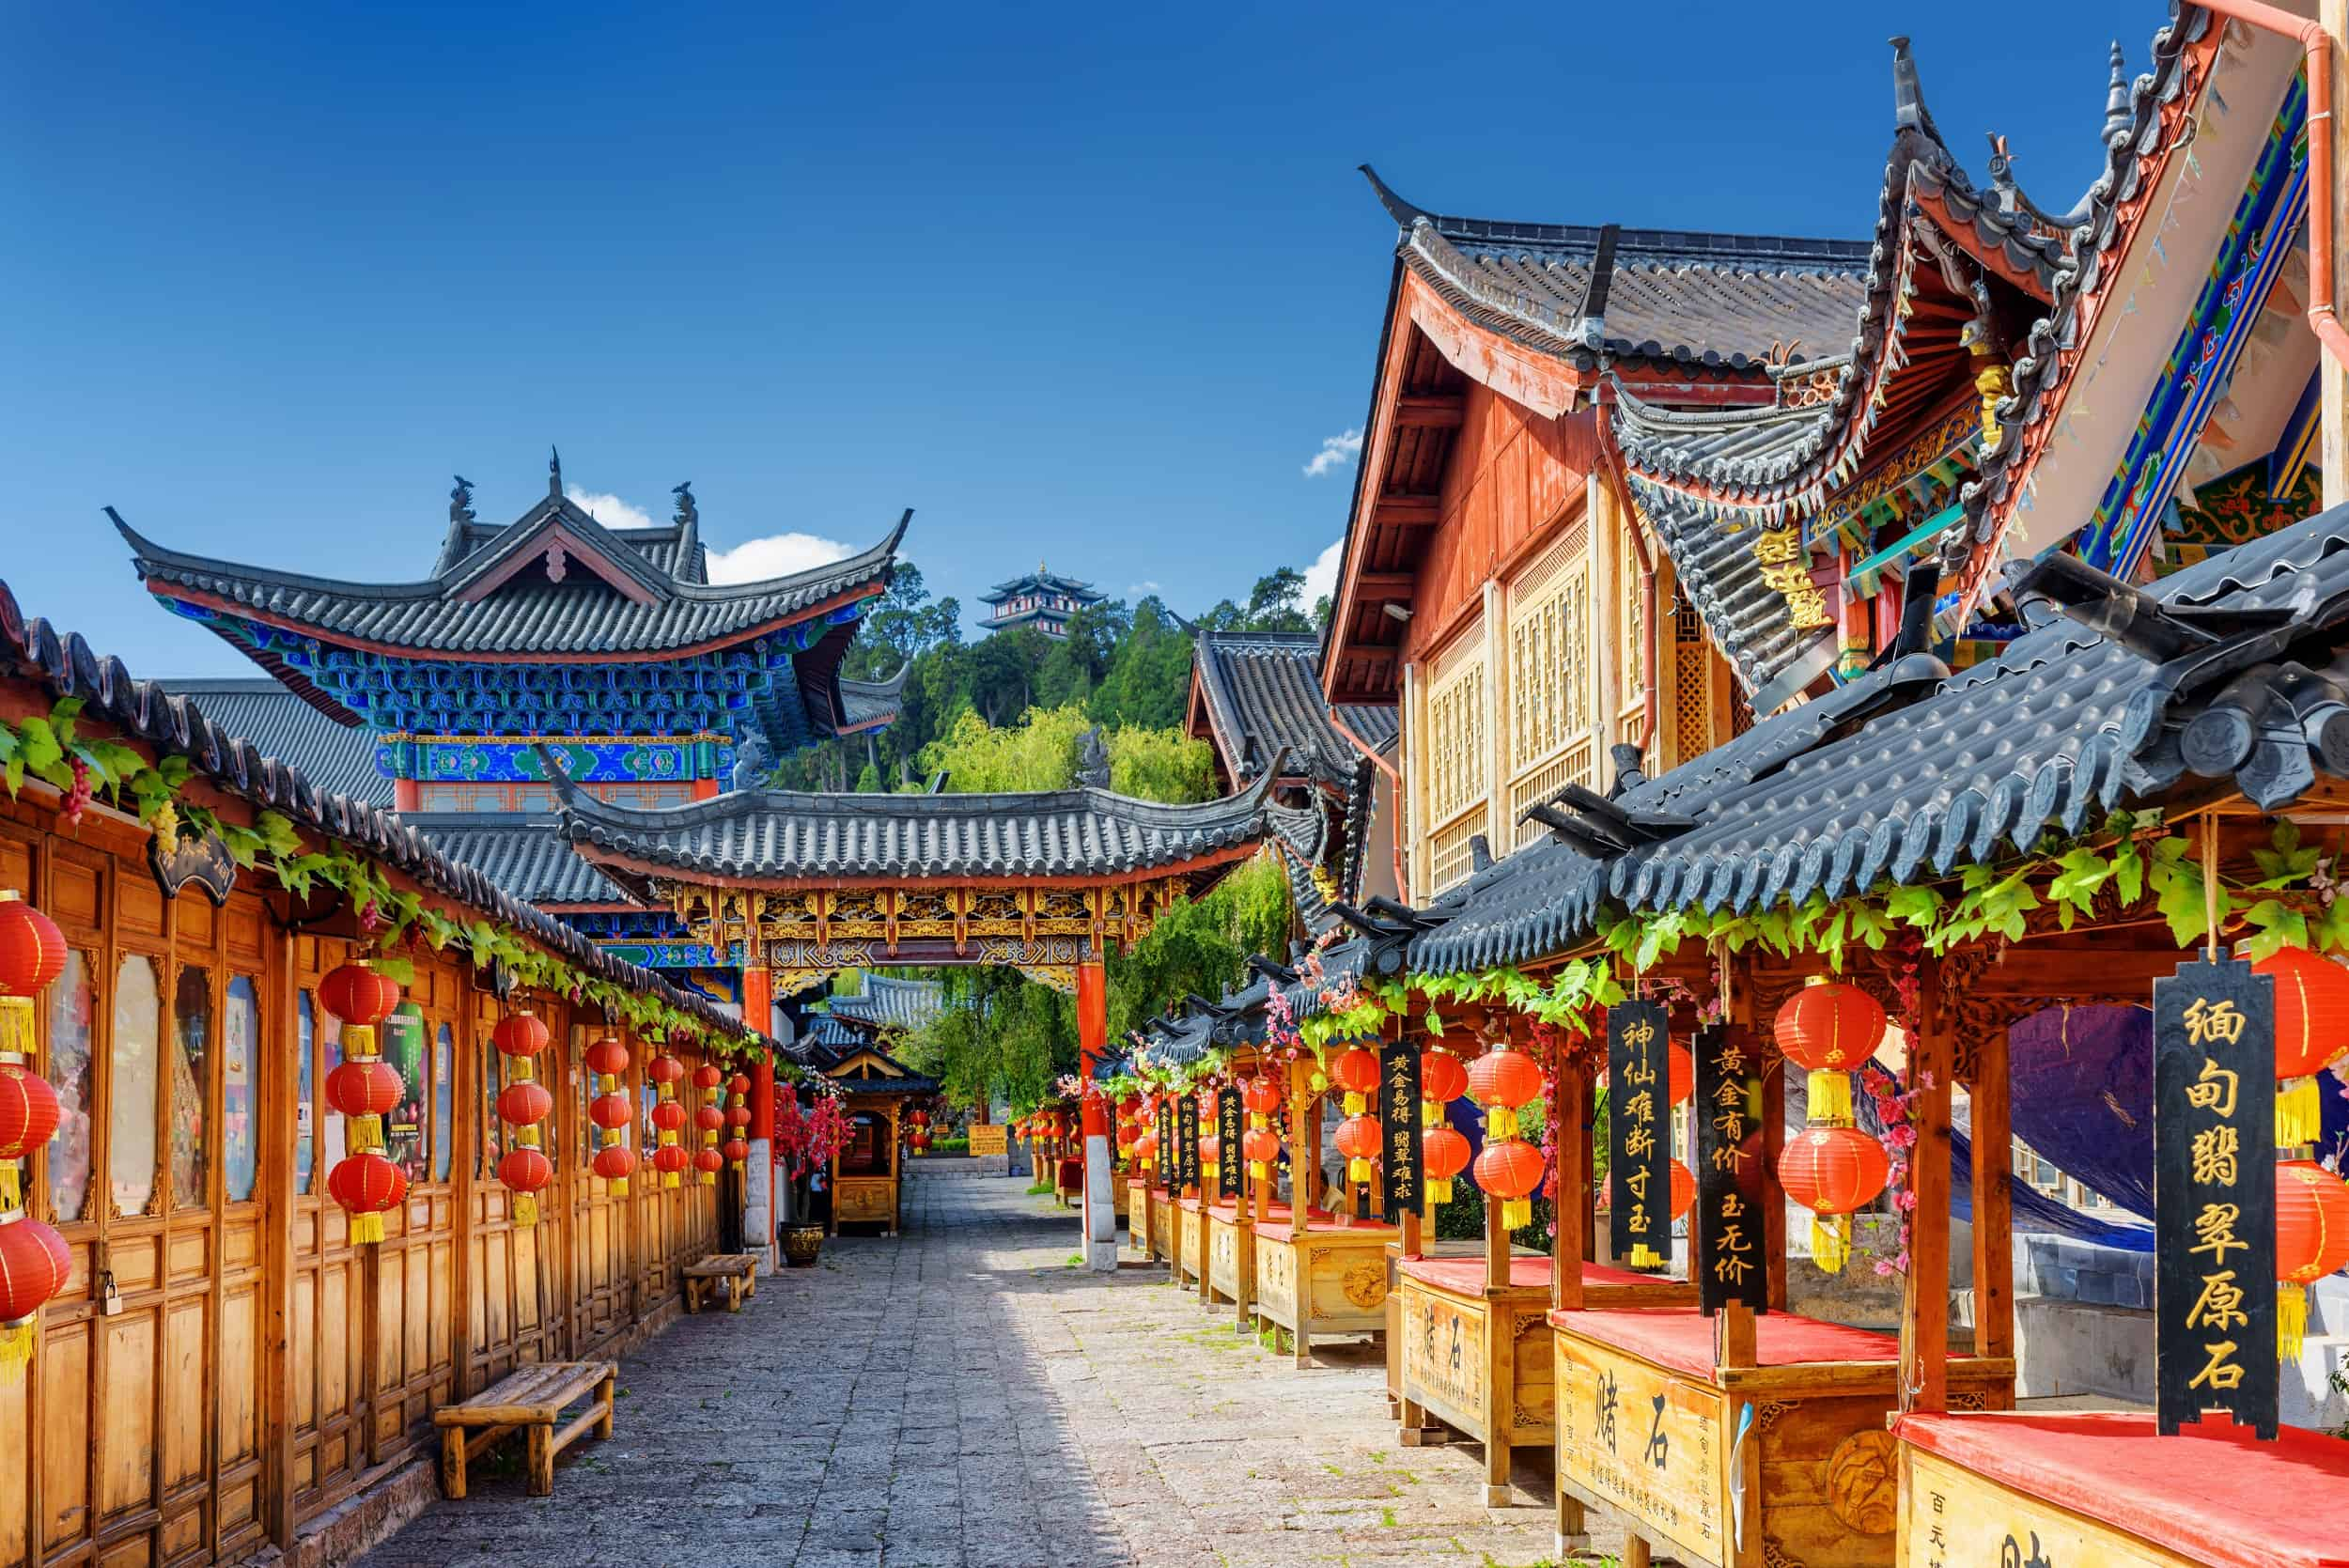 china places visit beijing lijiang tourist cities streets beyond province street canadian asia yunnan town